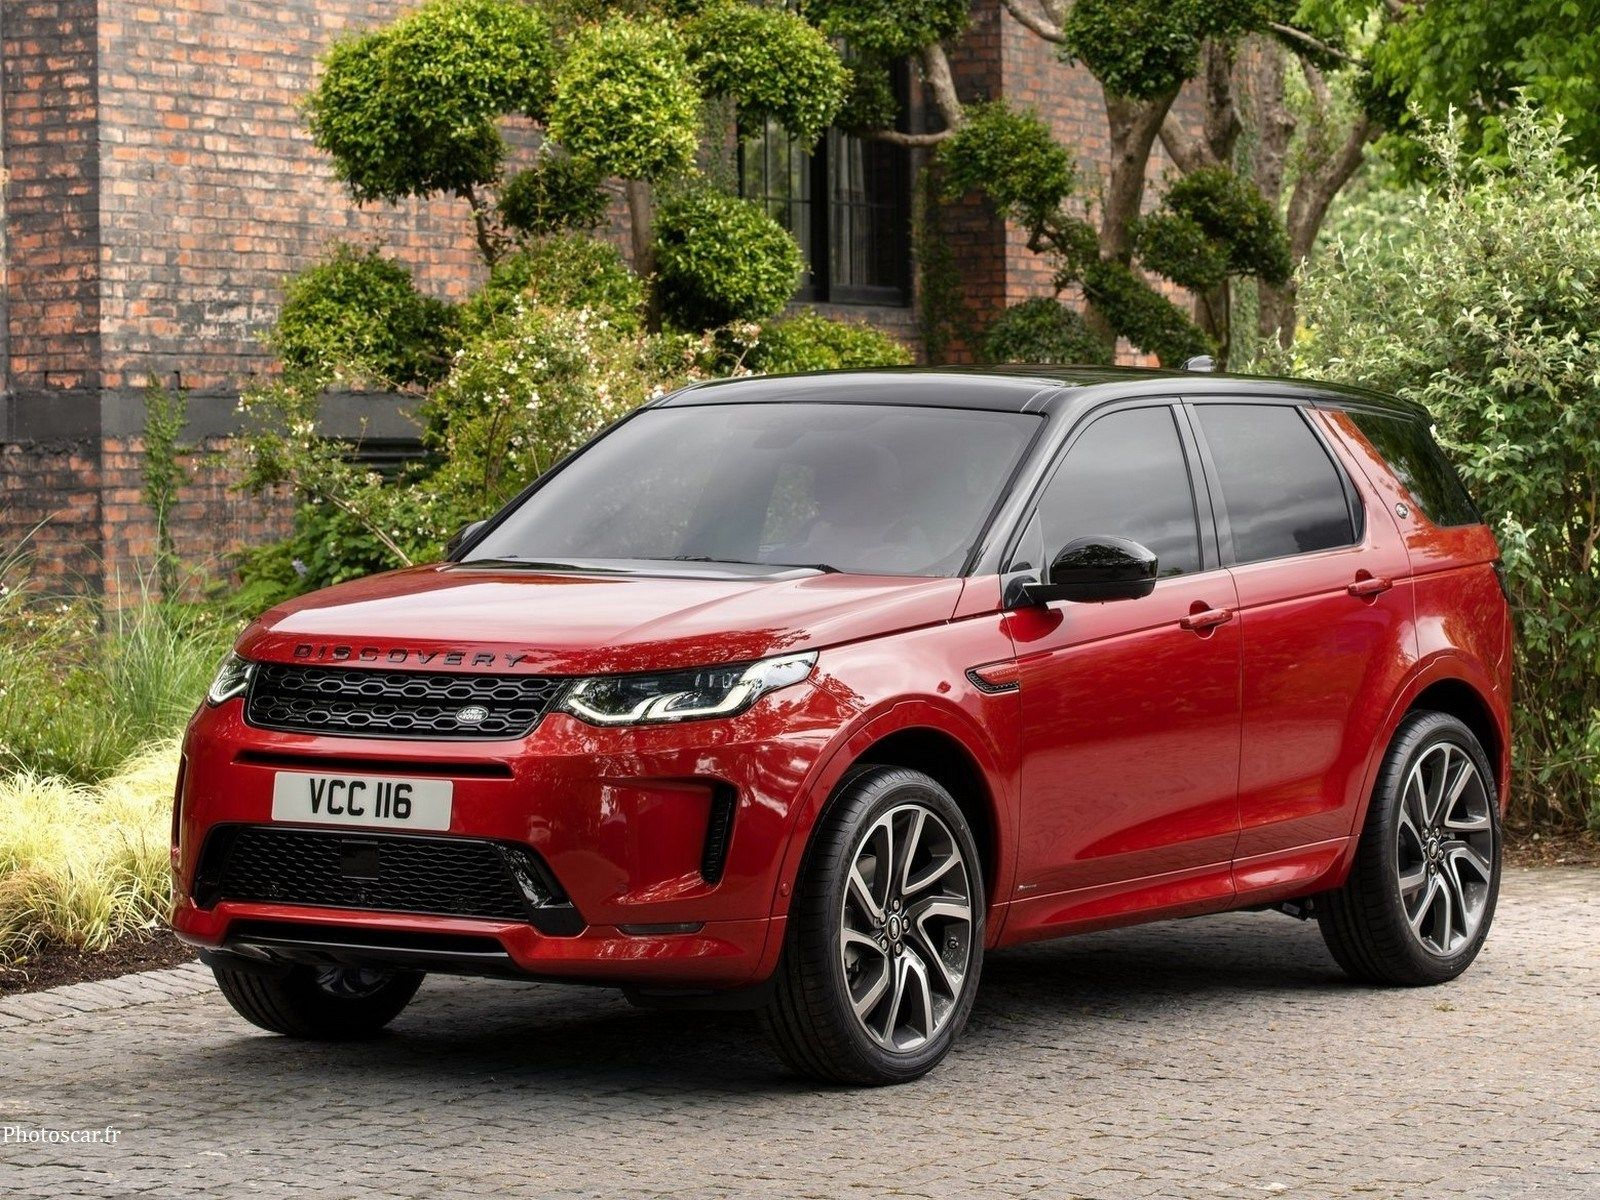 Land Rover Discovery Sport 2020 Minor Aesthetic Changes Land Rover Discovery Sport Land Rover Rover Discovery